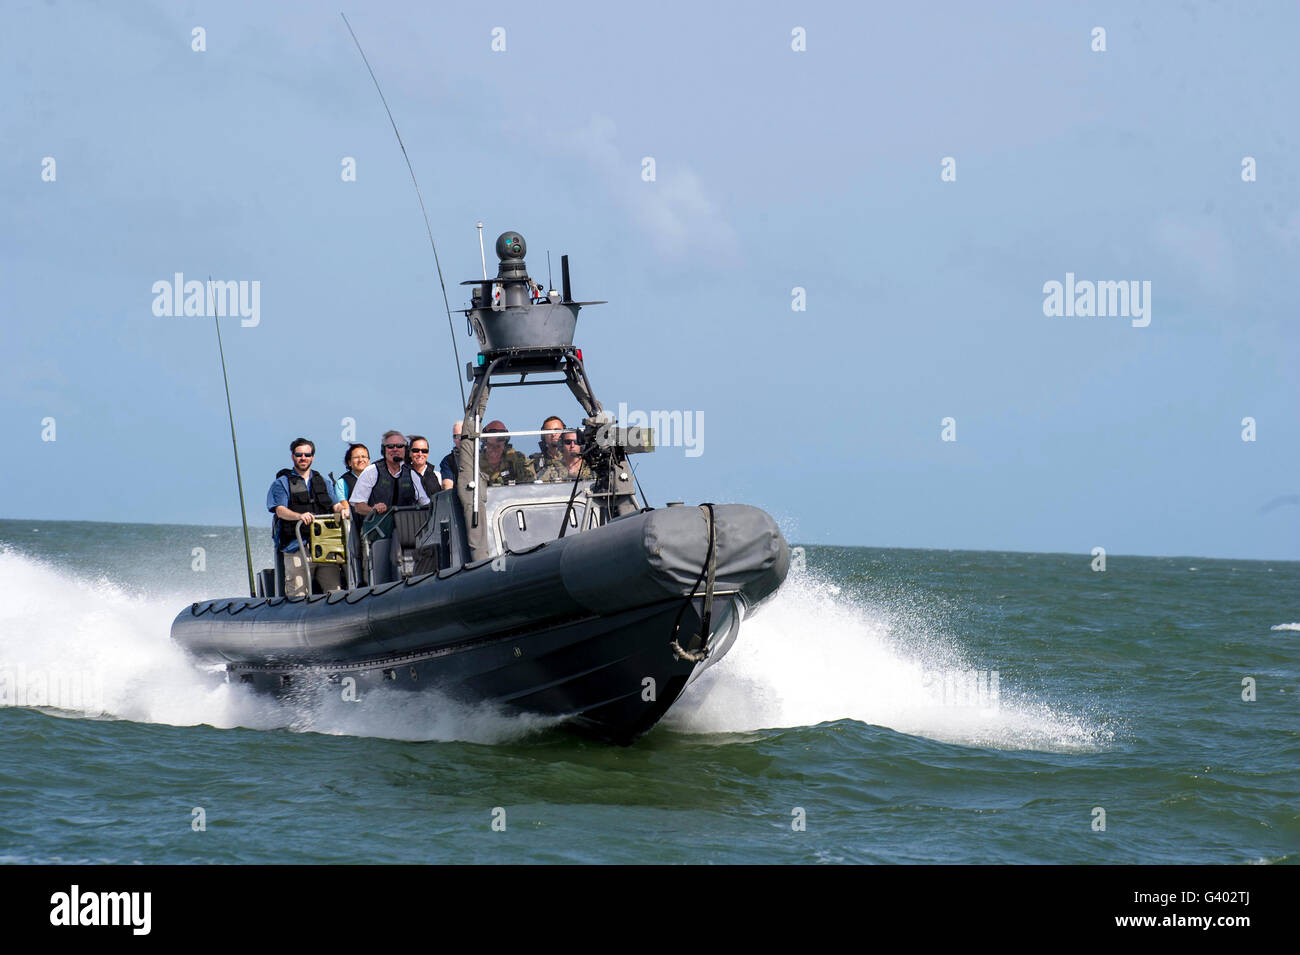 Basic training evolutions from a rigid-hulled inflatable boat. - Stock Image